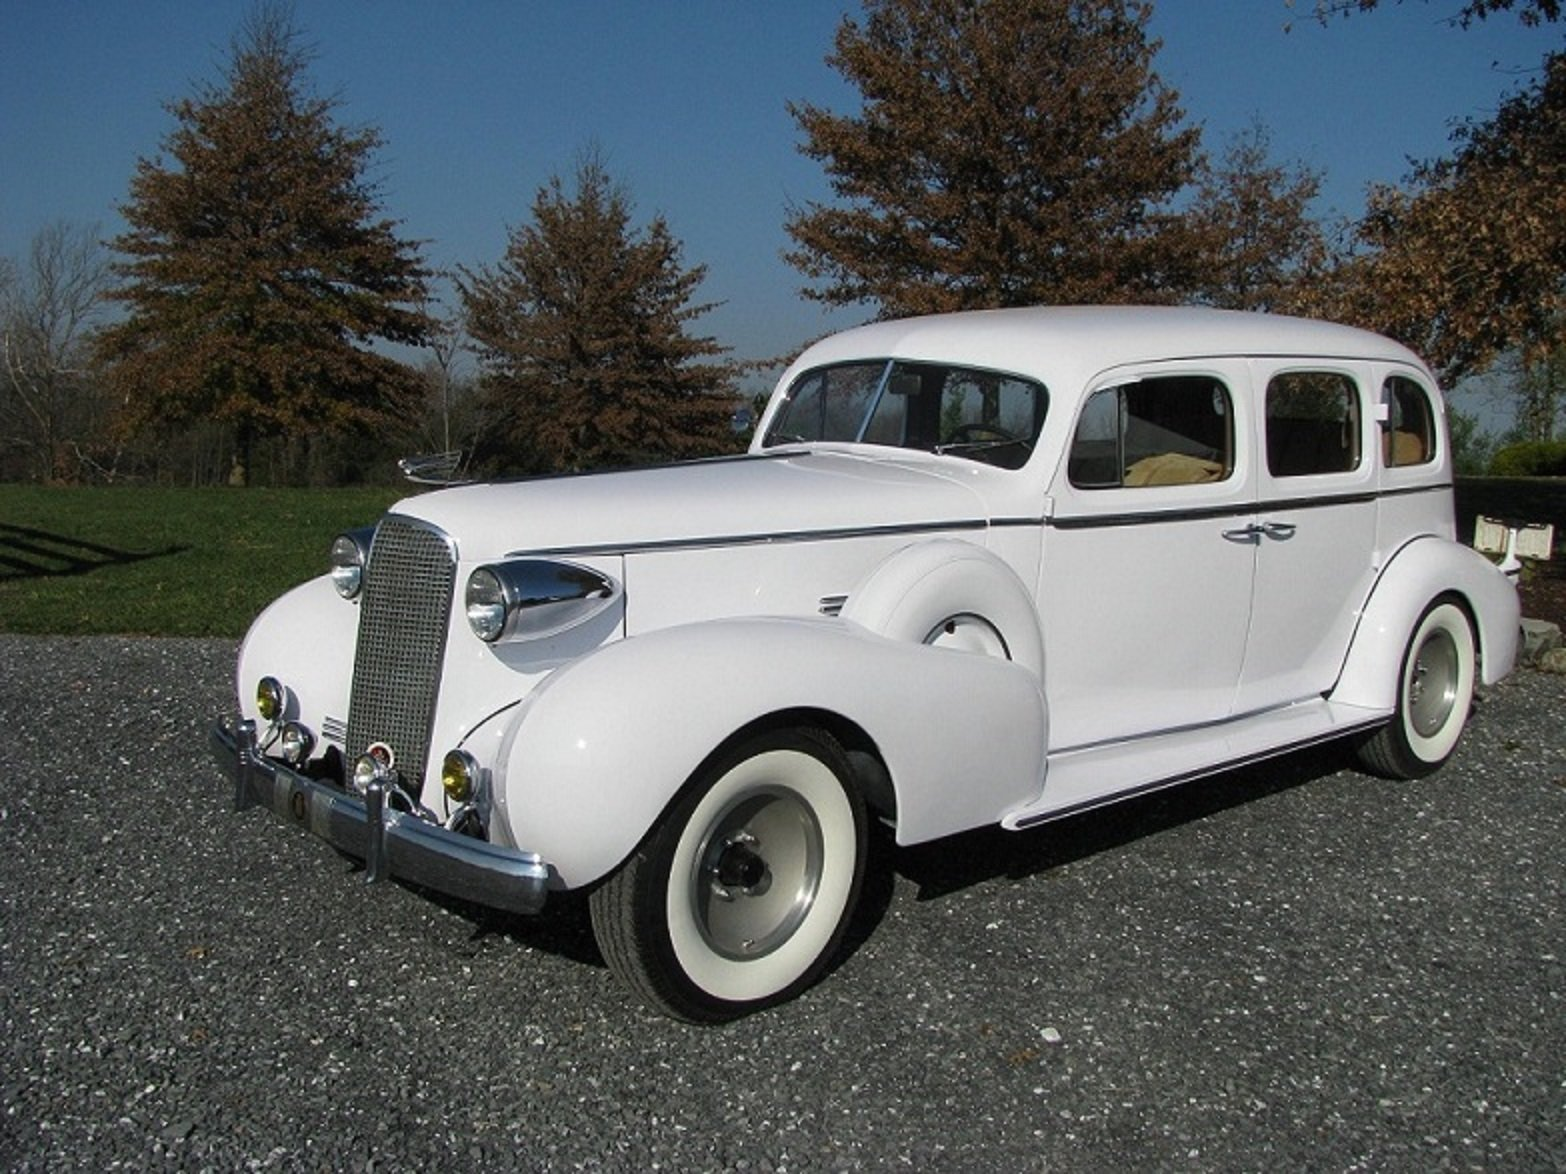 1937 Cadillac 85 Touring Sedan For Sale (picture 1 of 6)